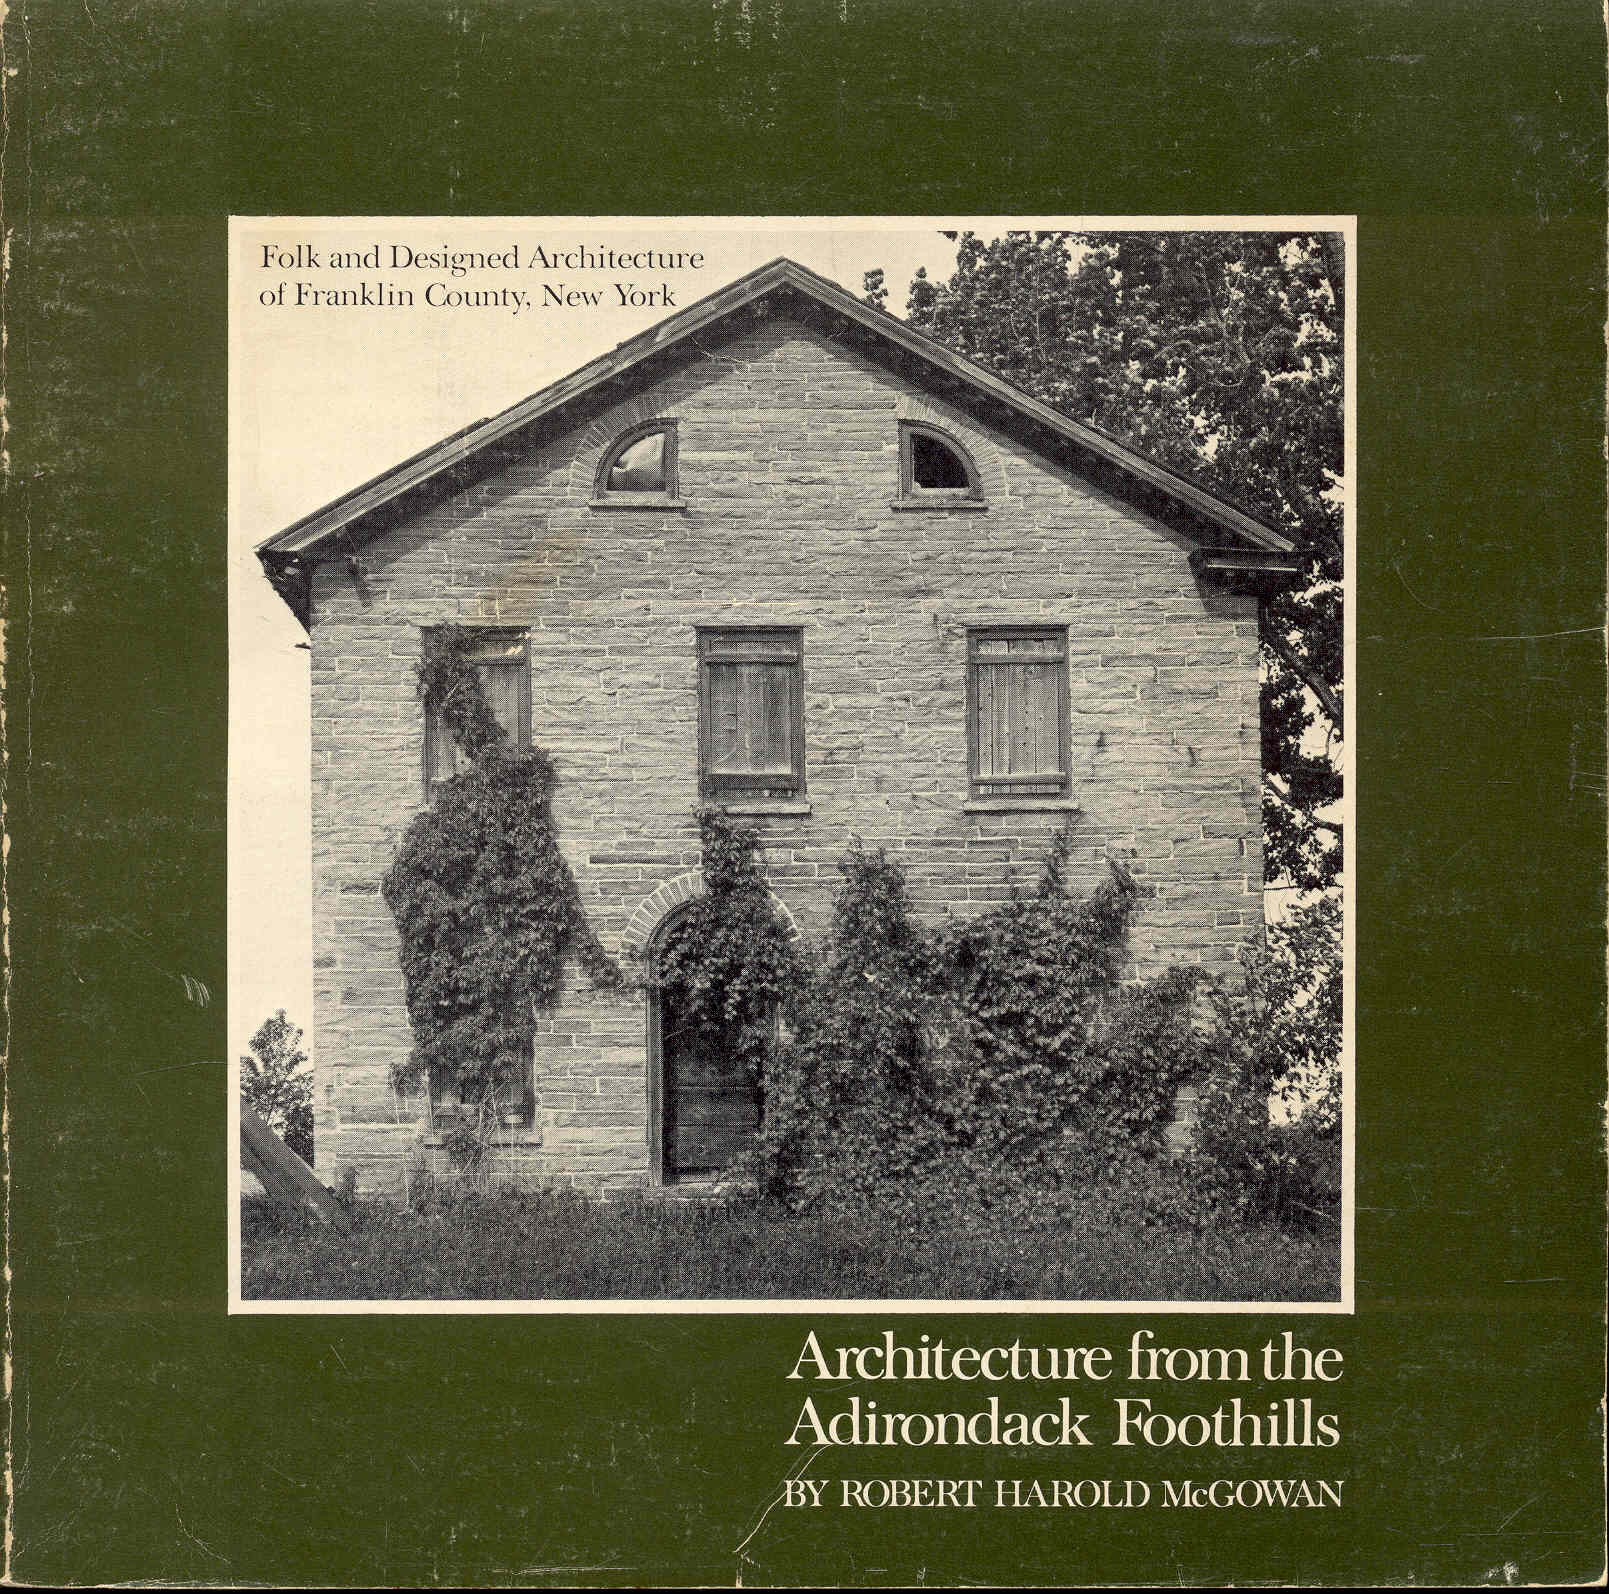 Image for Architecture from the Adirondack Foothills: Folk and Designed Architecture of Franklin County, New York